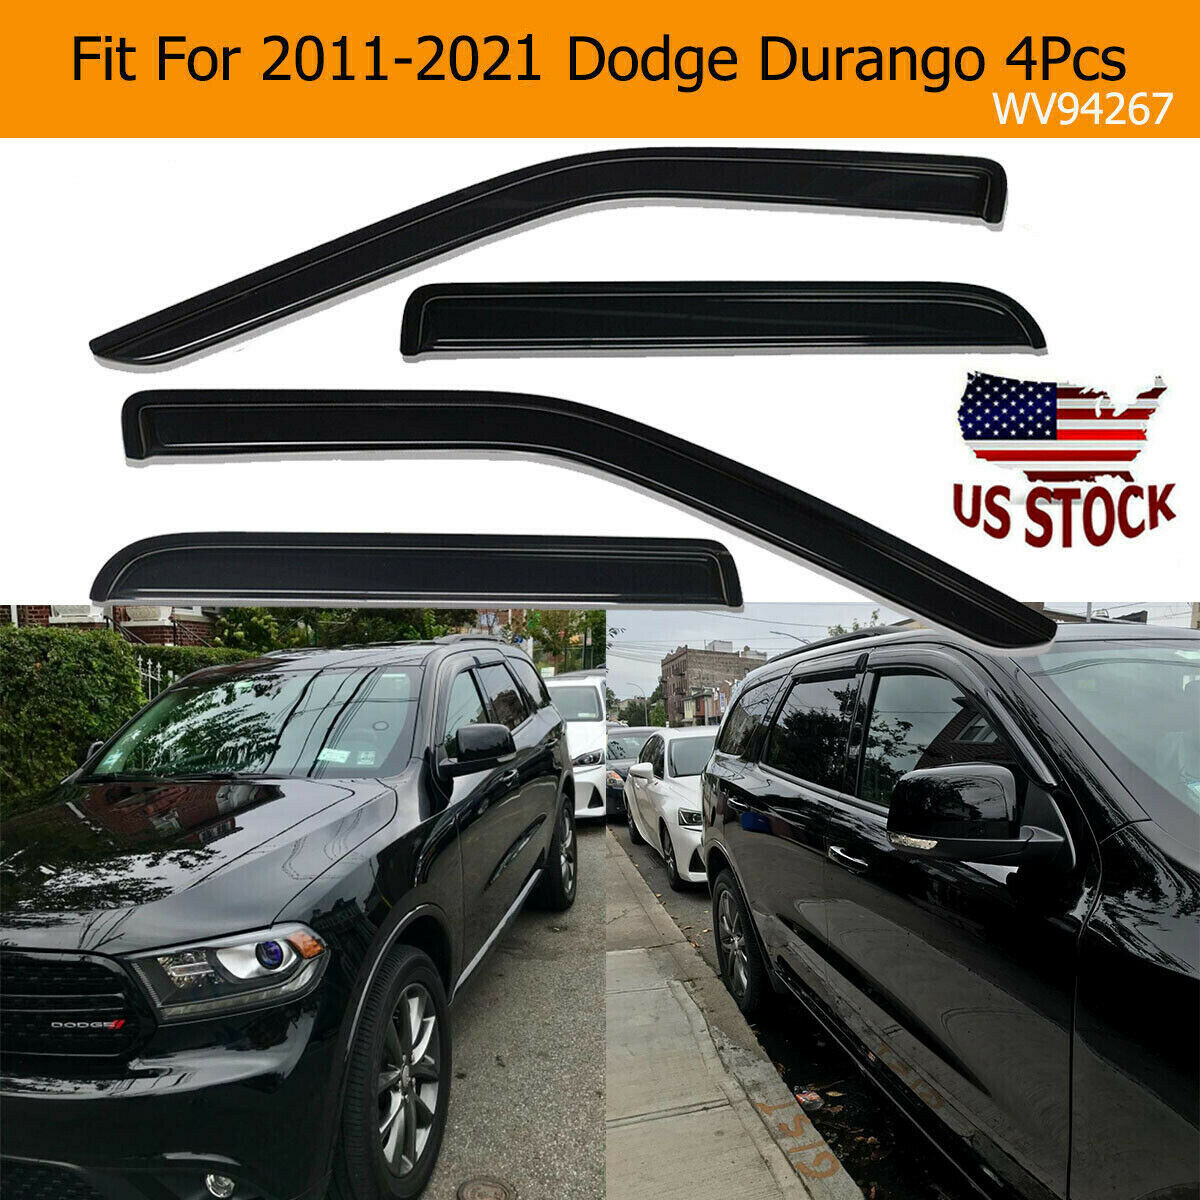 Details about  /Vent Shade Outside Mount Window Visor Sunroof Type 2 5pc For Dodge Durango 98-03